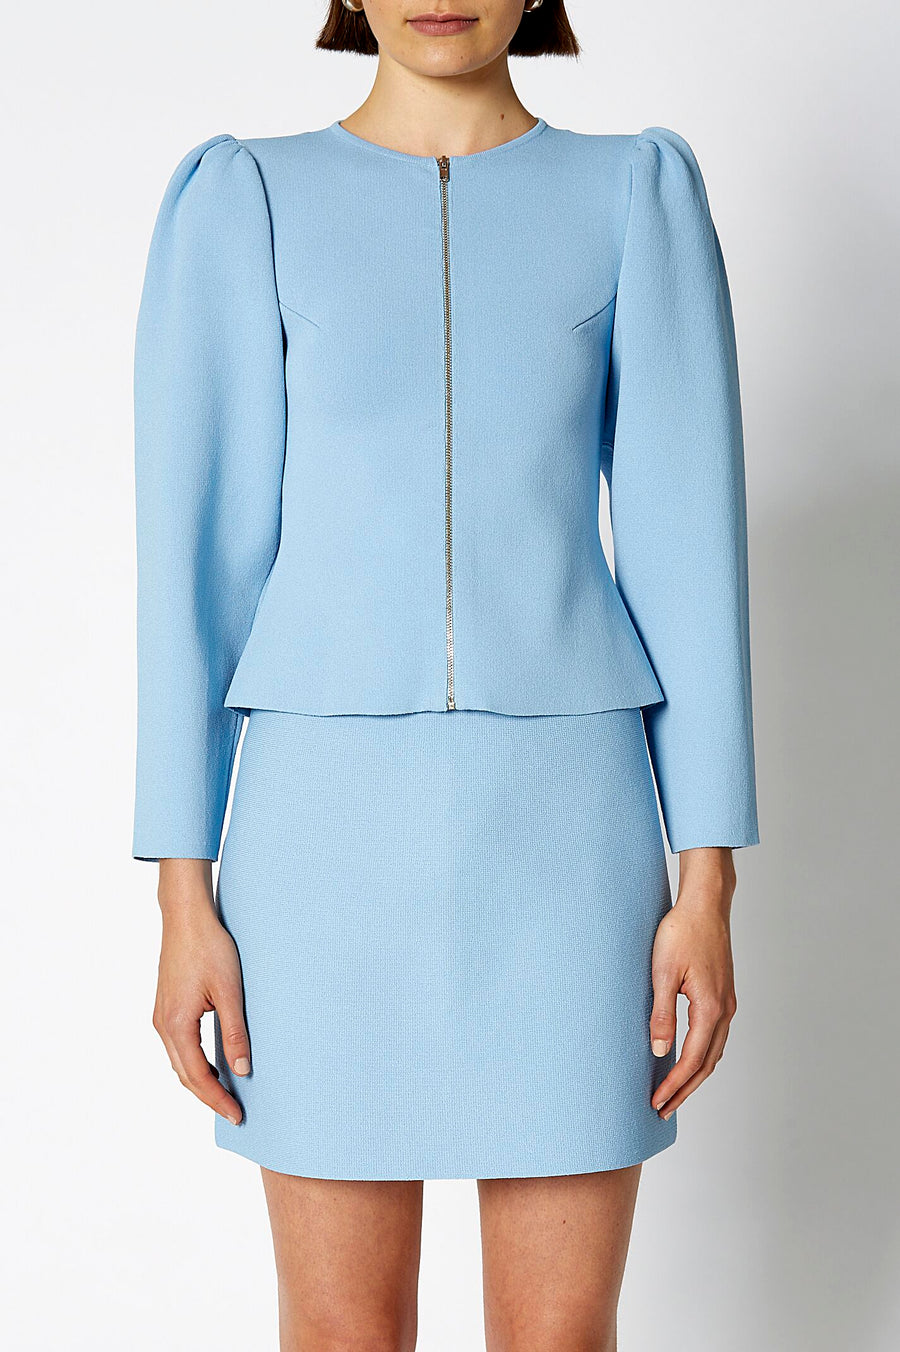 CREPE KNIT GATHER SLEEVE JACKET PALE BLUE, Round neckline, Long sleeve